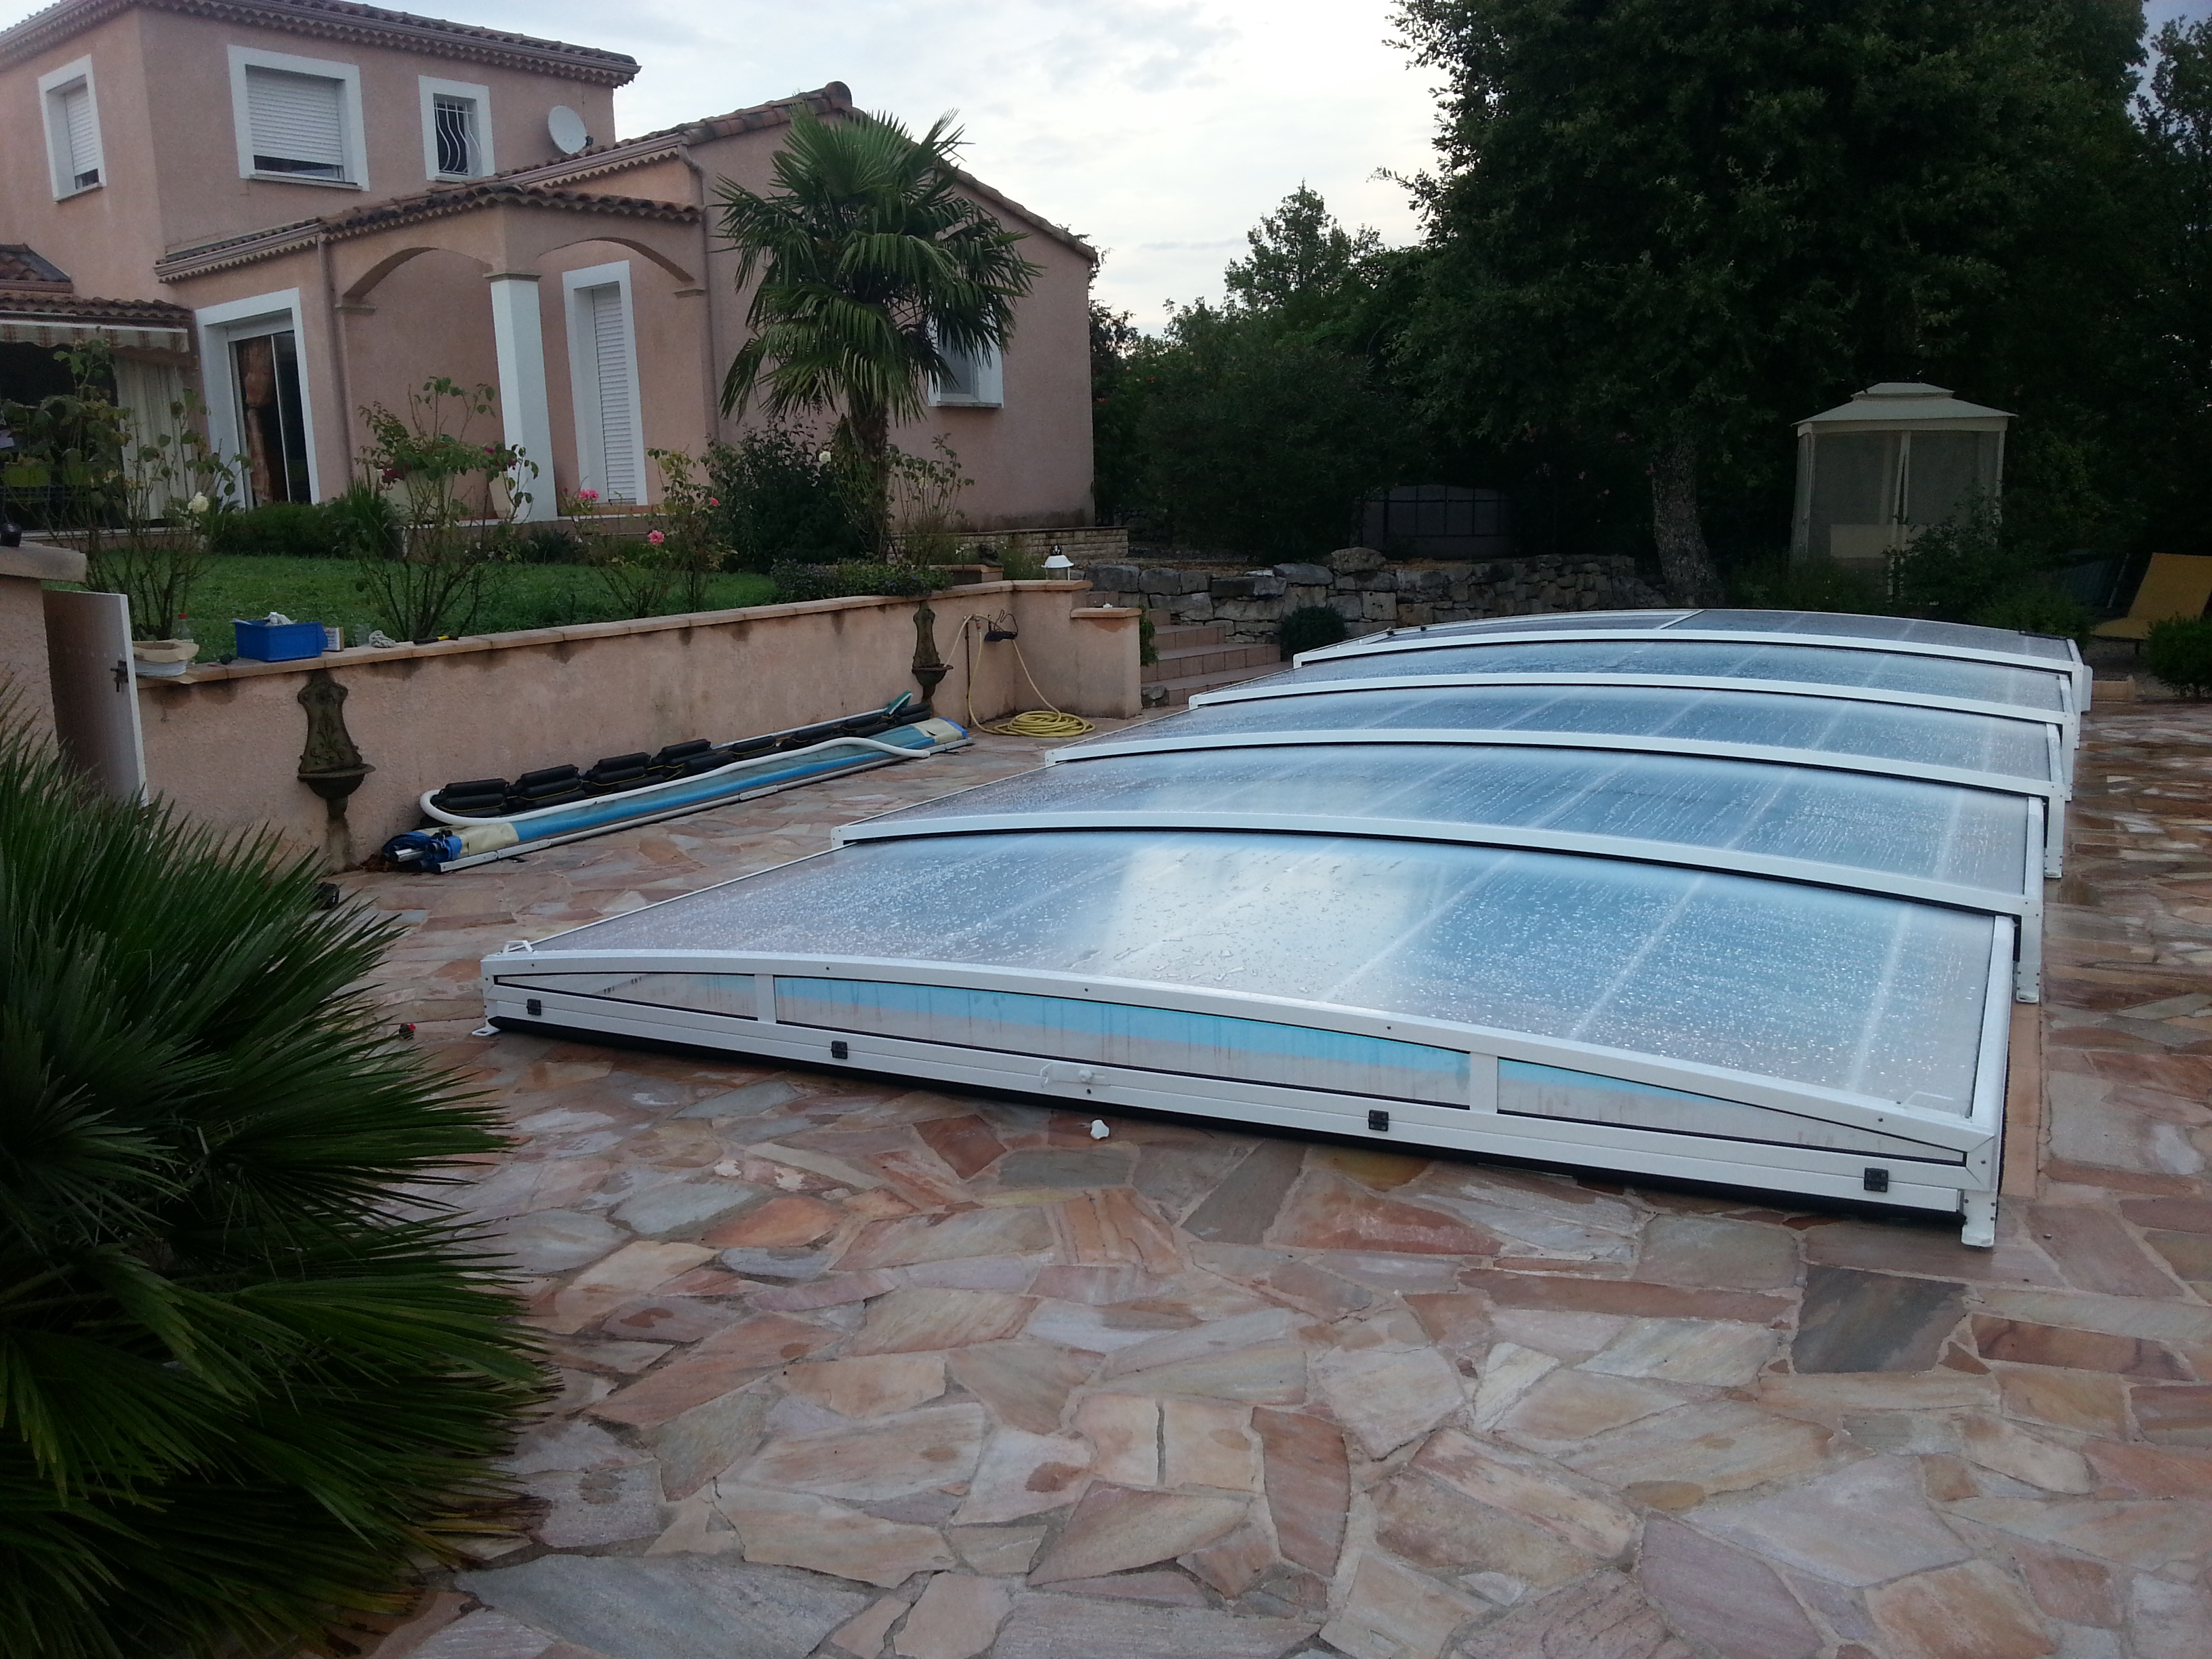 Abris piscine octavia perfect abri piscine haut cintr for Abri de piscine toulouse